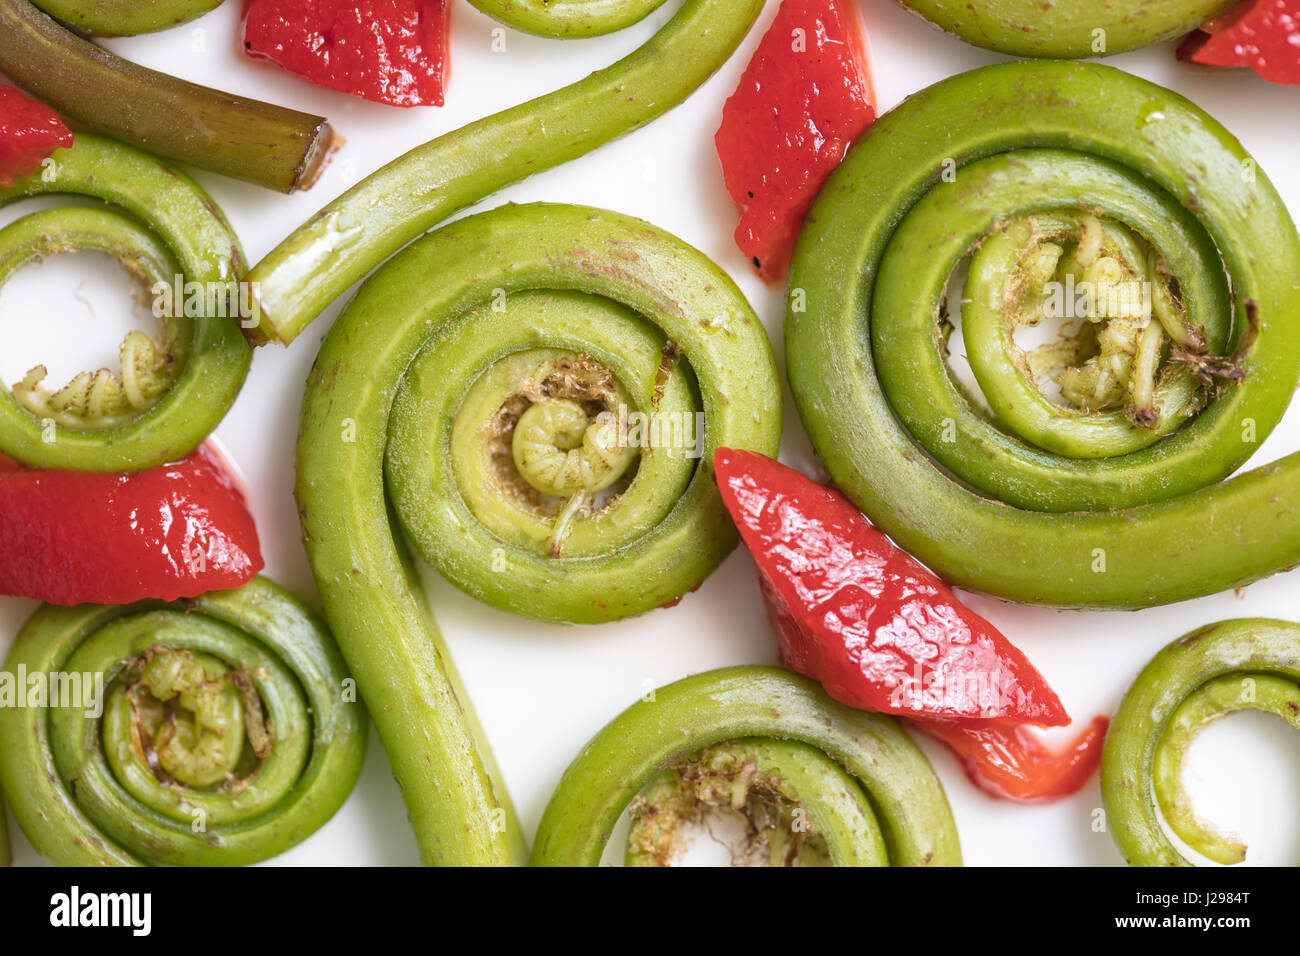 Fiddlehead Ferns and red pepper pieces layed out on a white ceramic plate - Stock Image